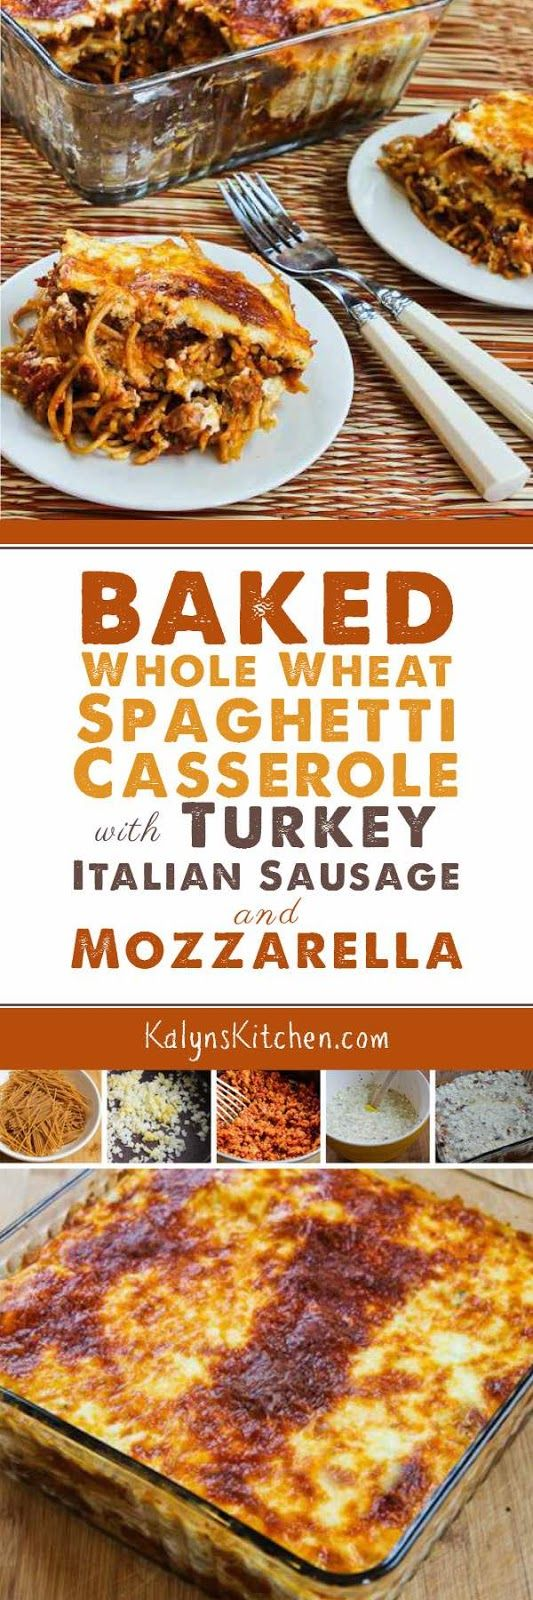 When you really NEED some comfort food, this Baked Whole Wheat Spaghetti Casserole with Turkey Italian Sausage and Mozzarella is a healthier option, and this is delicious! [found on KalynsKitchen.com]